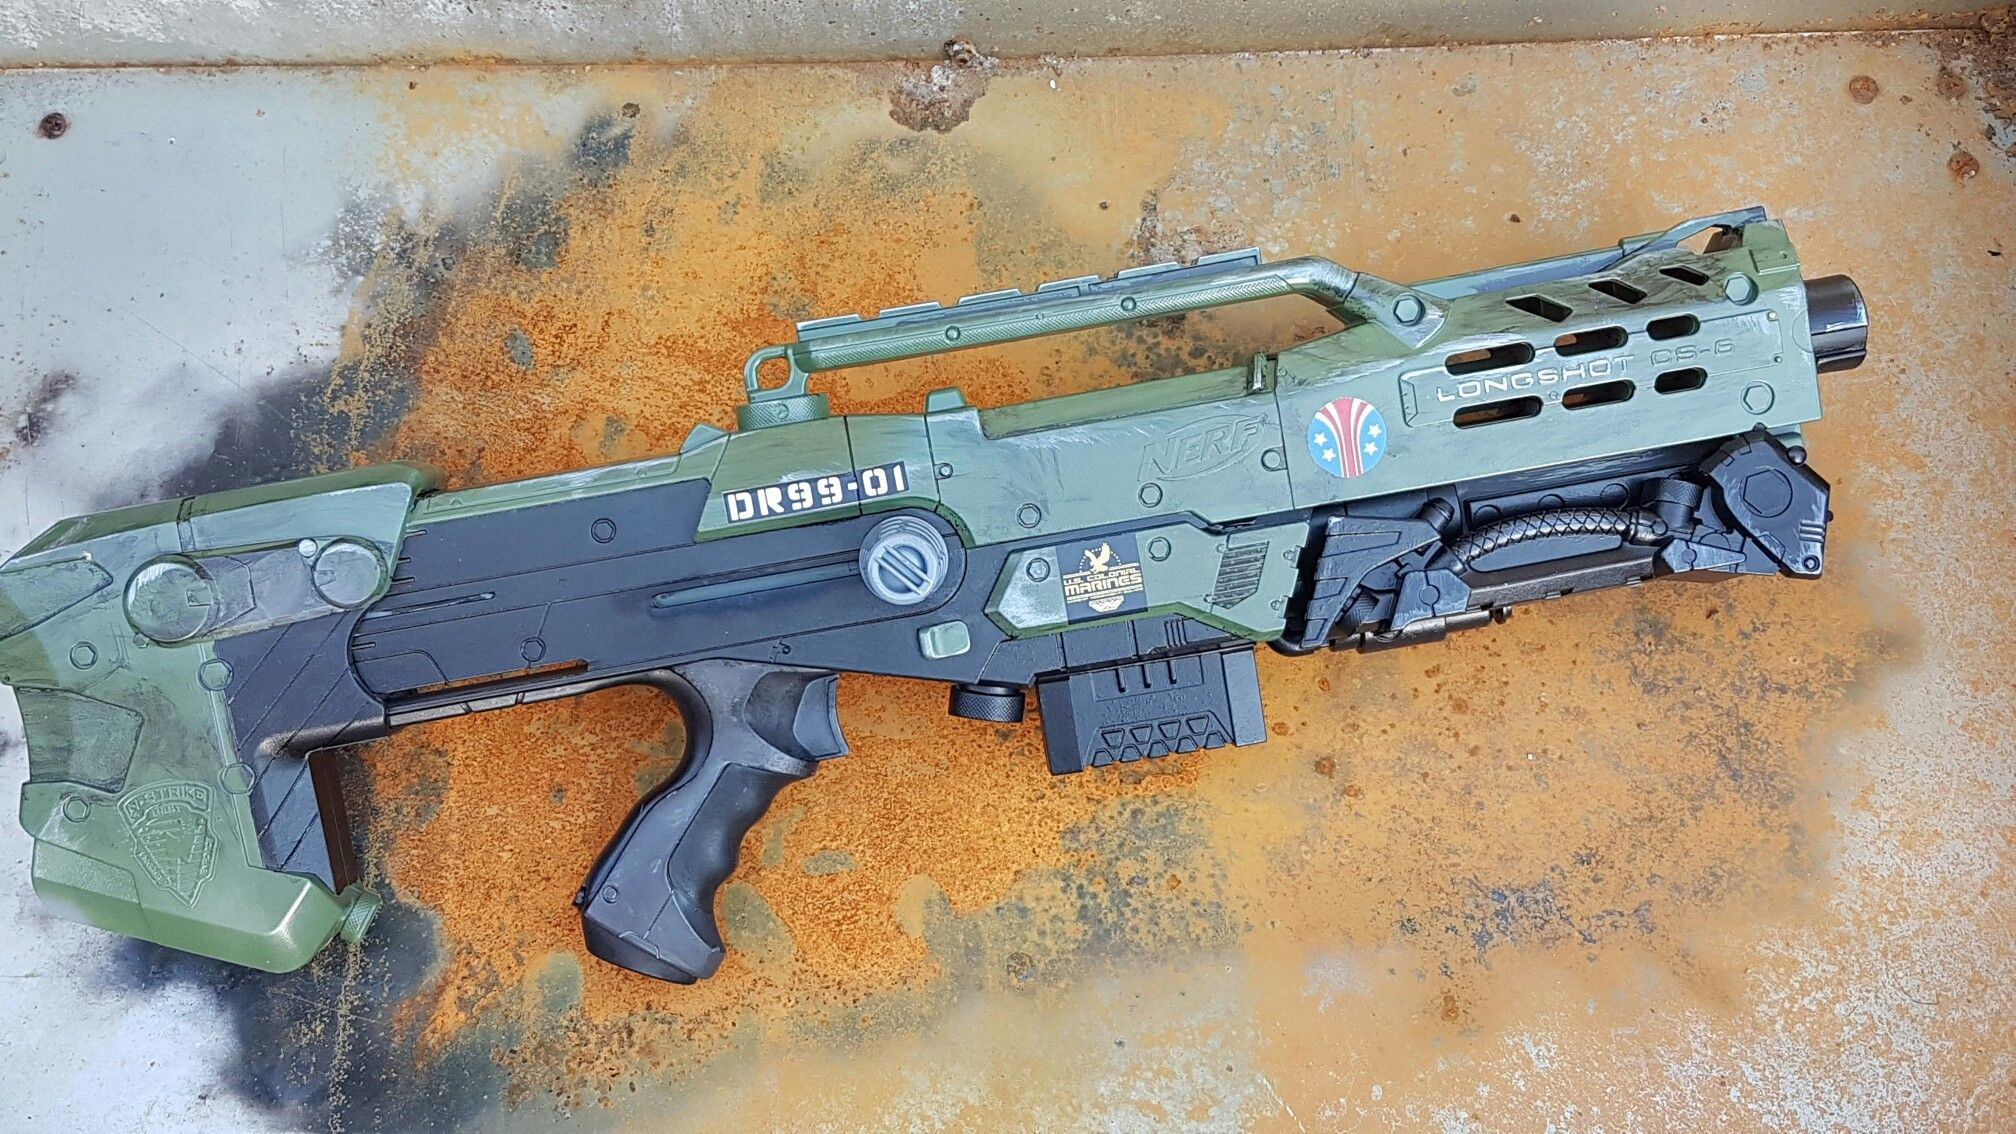 For sale custom painted space marines style longshot. Standard unmodified  internals. Click link at the bottom to ebay listing. #Nerf #nerfgun  #nerfblaster ...